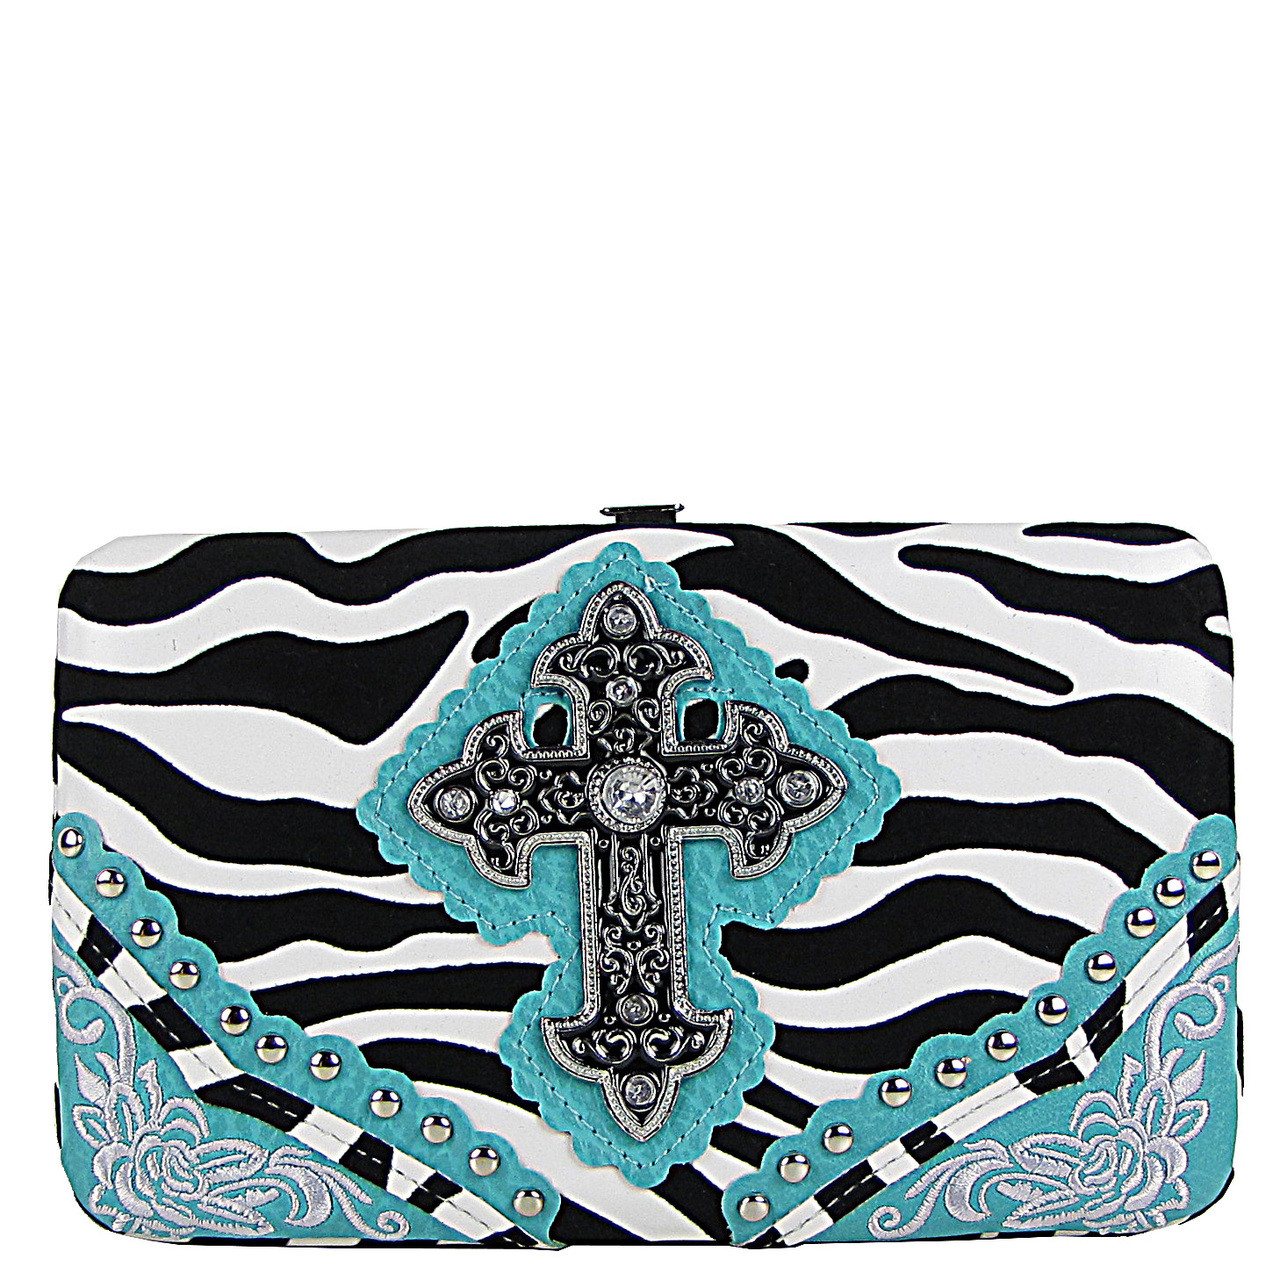 TURQUOISE ZEBRA STITCHED CROSS FLAT THICK WALLET FW2-0472TRQ